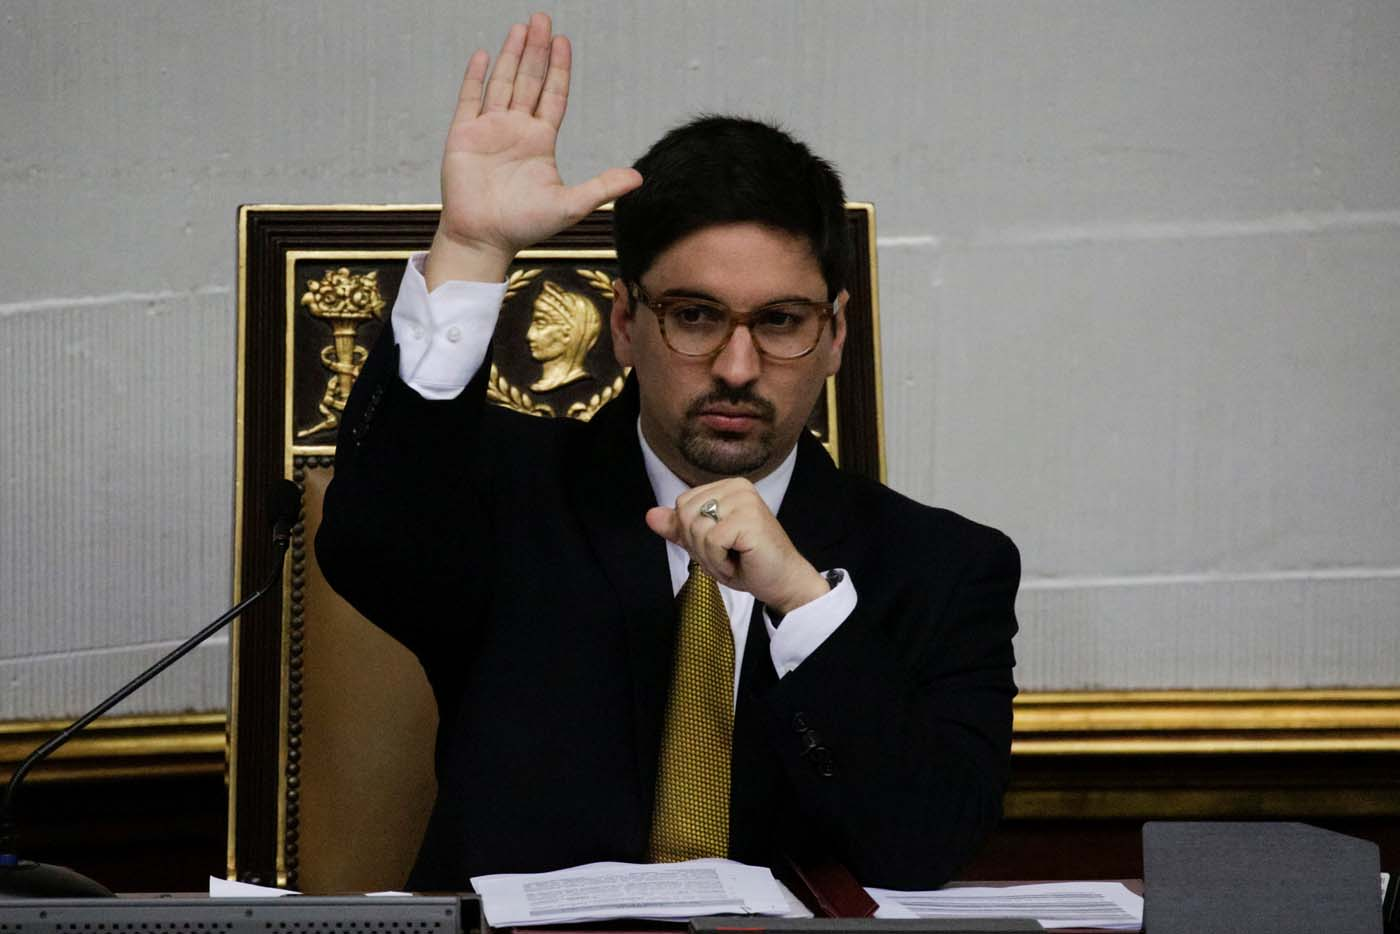 Freddy Guevara, first vice president of the National Assembly and deputy of the opposition party Popular Will (Voluntad Popular), raises his hand as he votes during a session of the National Assembly in Caracas, Venezuela January 17, 2017. Picture taken January 17, 2017. REUTERS/Marco Bello